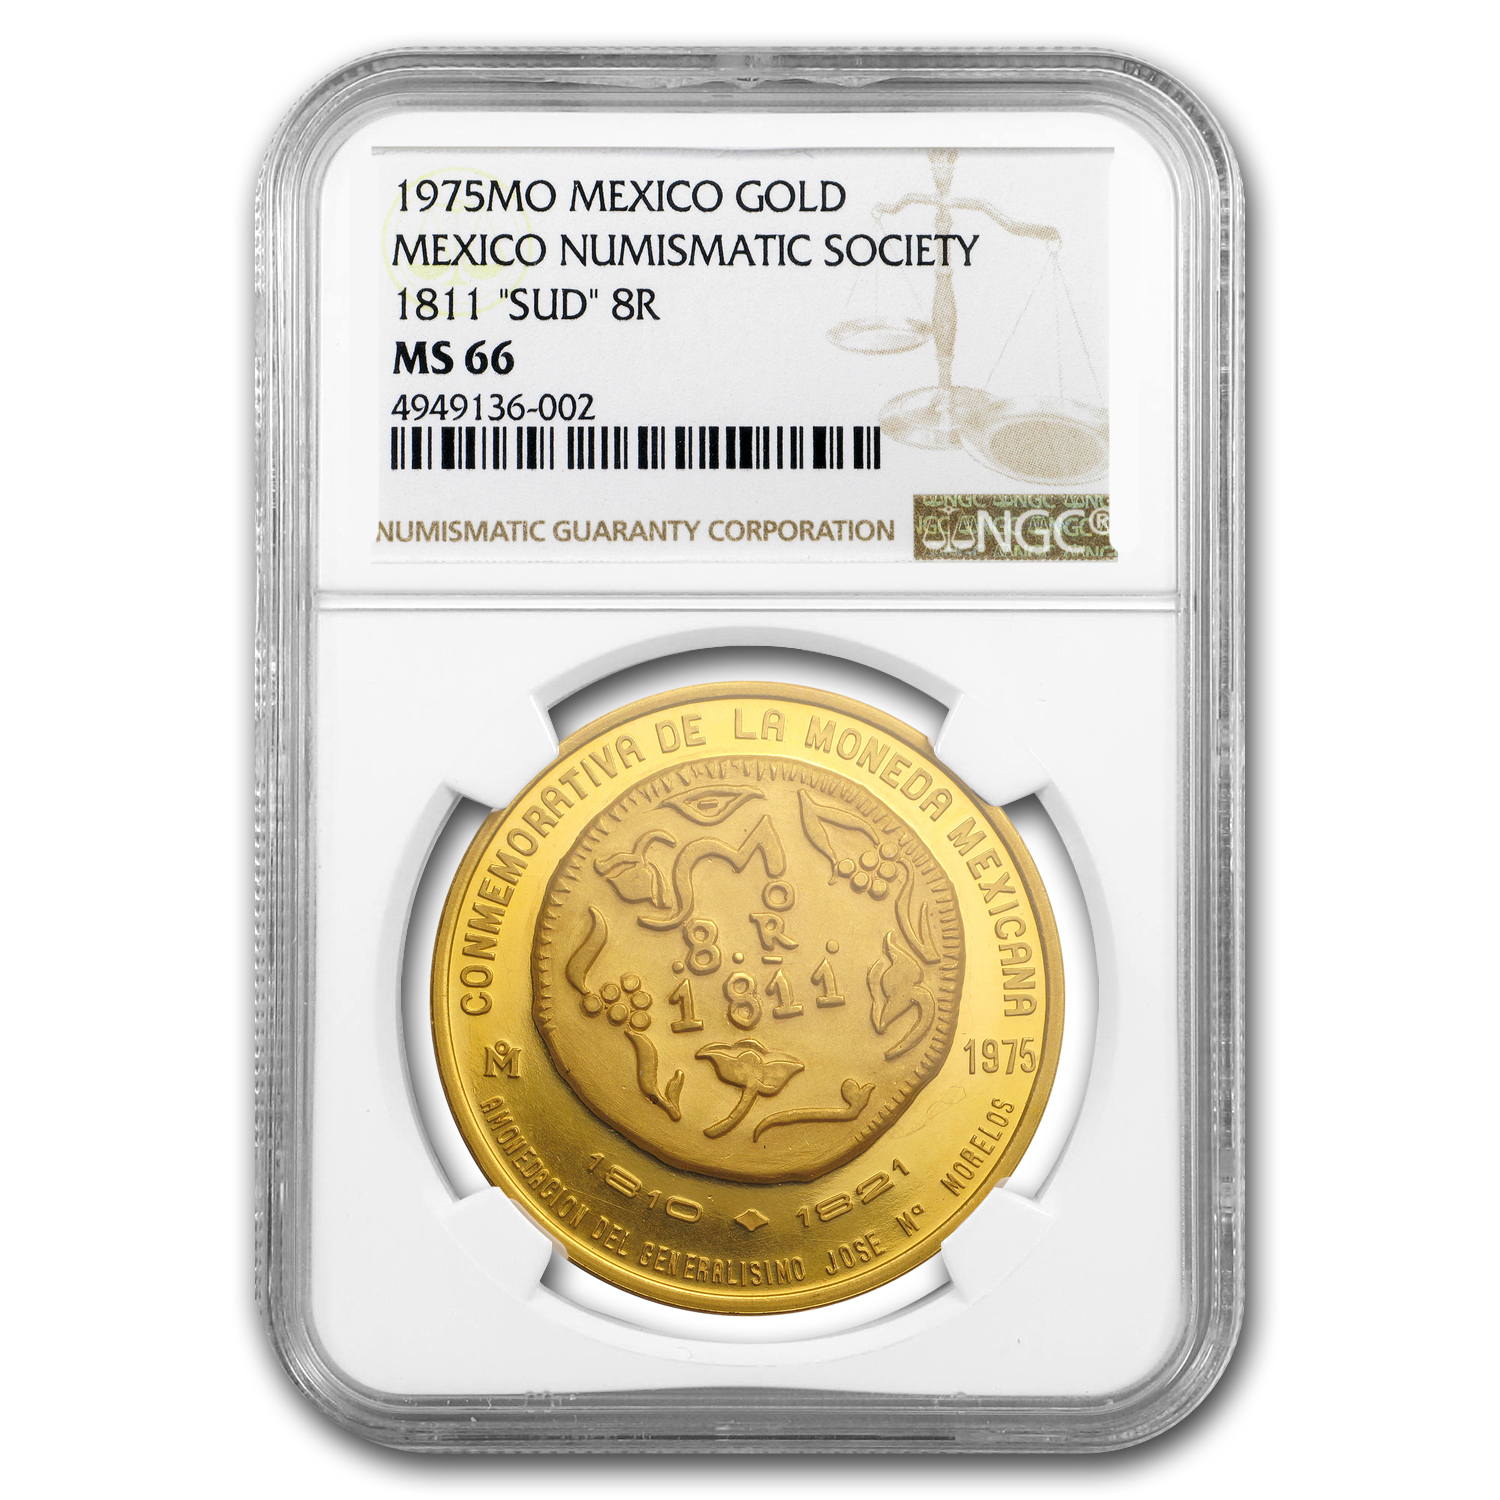 "1975 Mexico Gold Medal Numismatic Society 1811 ""SUD"" 8R MS-66 NGC"